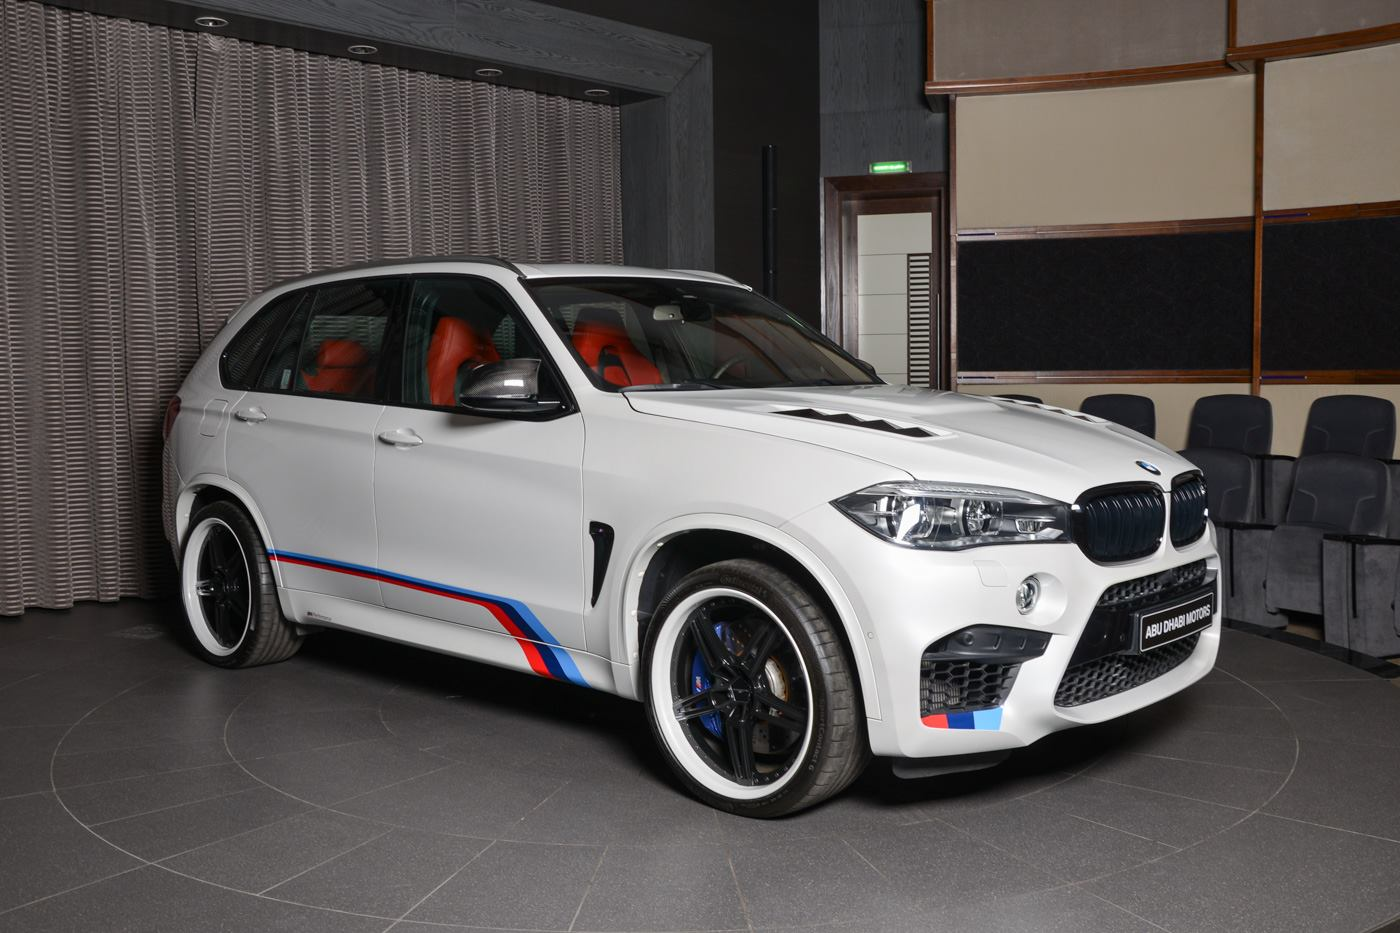 This Highly Specced BMW X5 M Will Have You Drooling